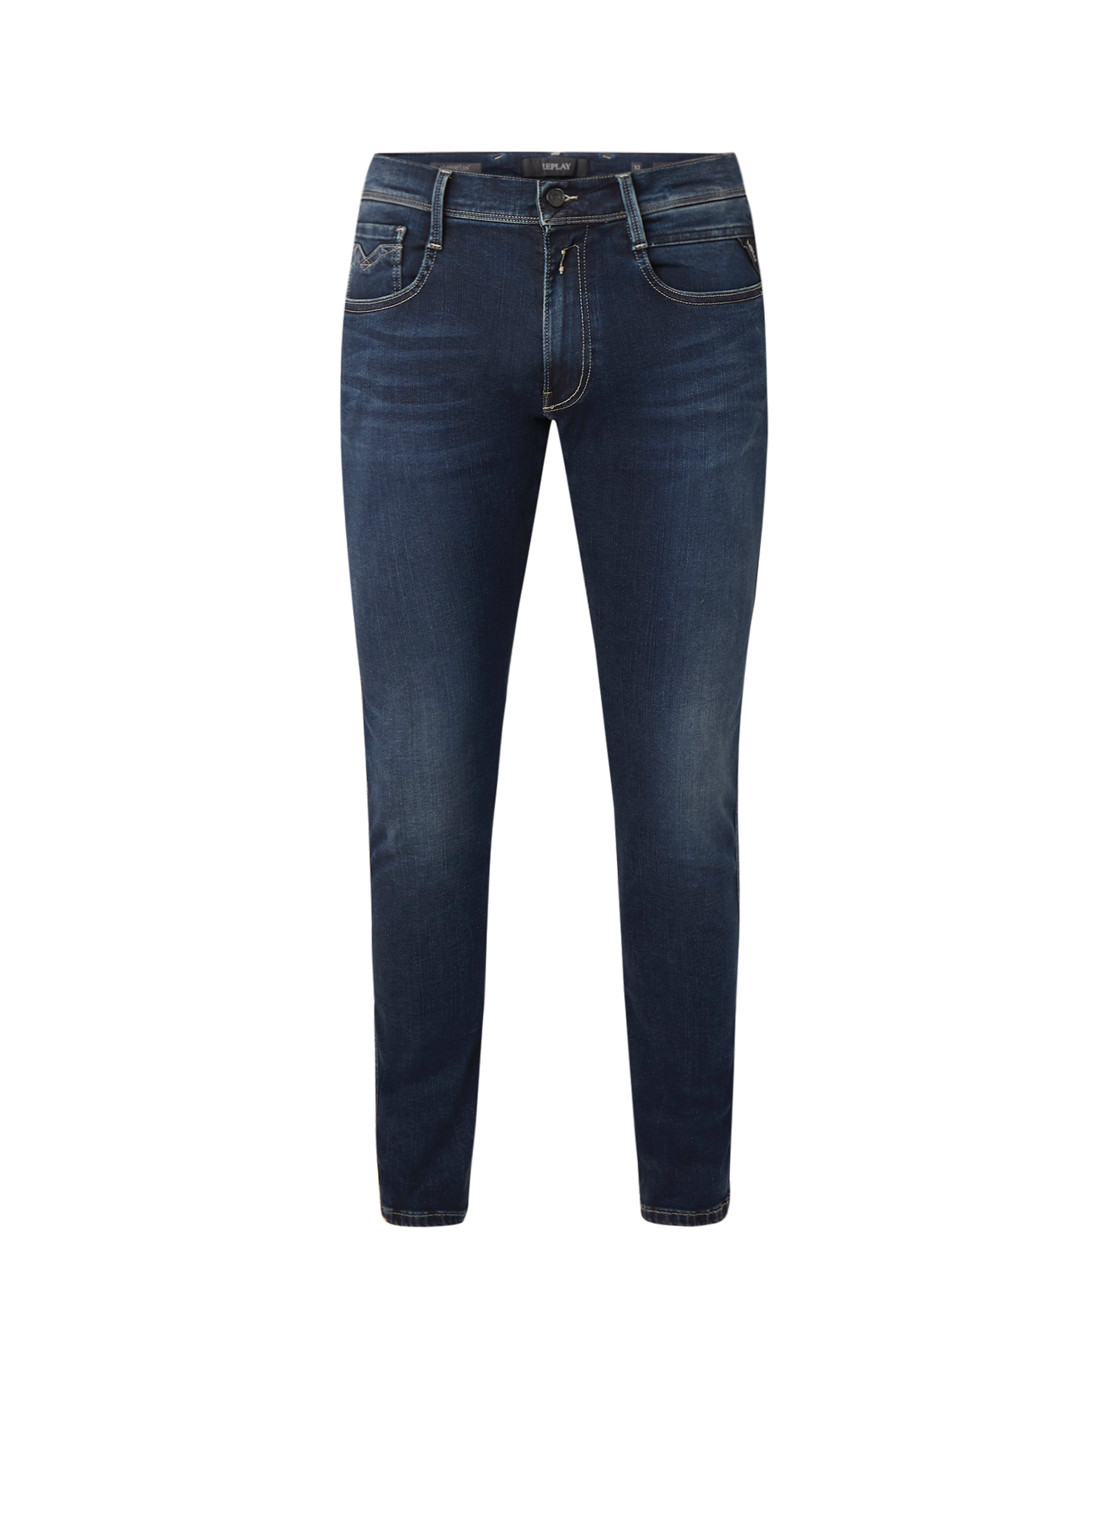 Replay Anbass hyperflex slim fit jeans in donkere wassing